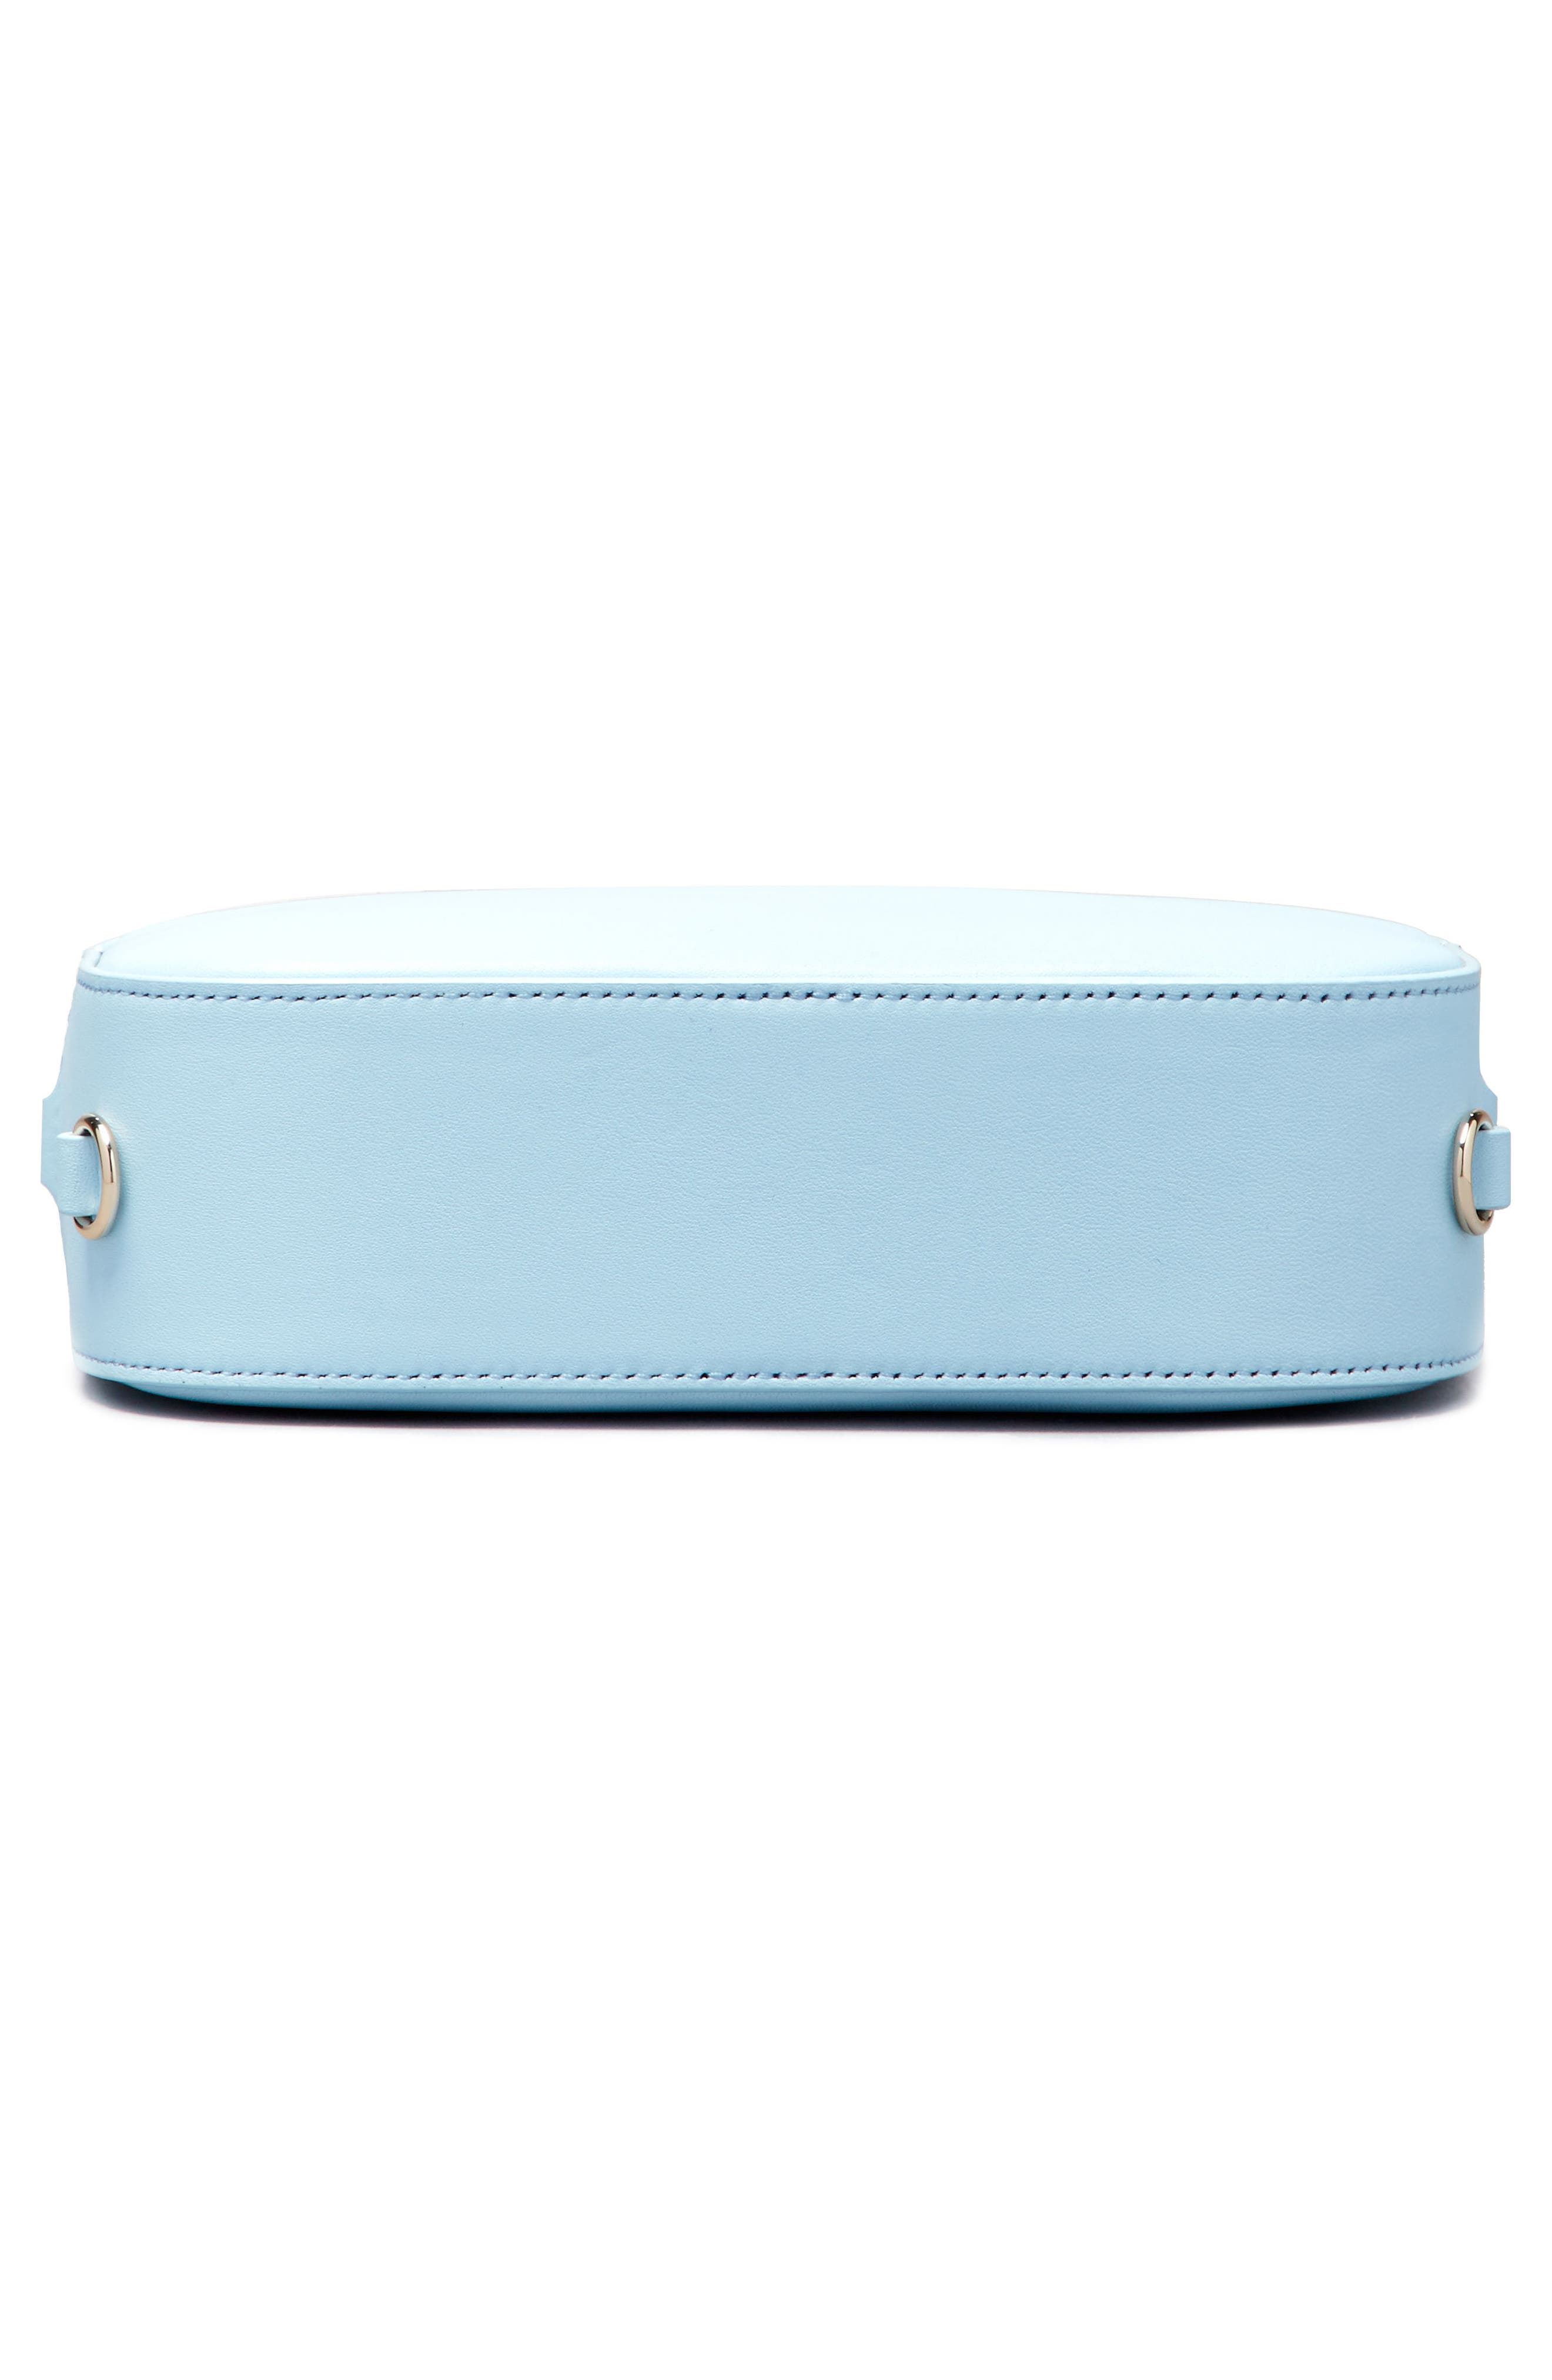 Personalized Leather Camera Bag,                             Alternate thumbnail 13, color,